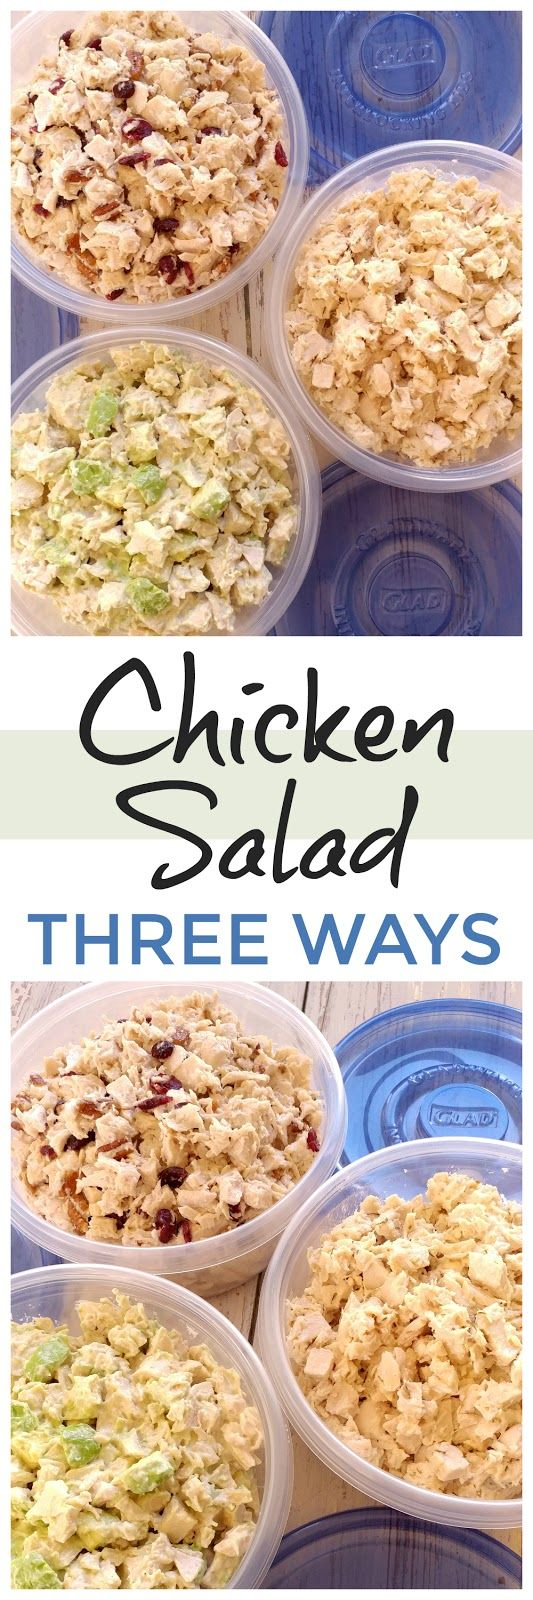 Chicken Salad 3 Ways! Make all three: Cranberry Pecan, Classic and Avocado Ranch Chicken Salad all from one batch of chicken. Perfect for game day and picnics! Keep them fresh with @gladproducts #Glad2WasteLess #ad